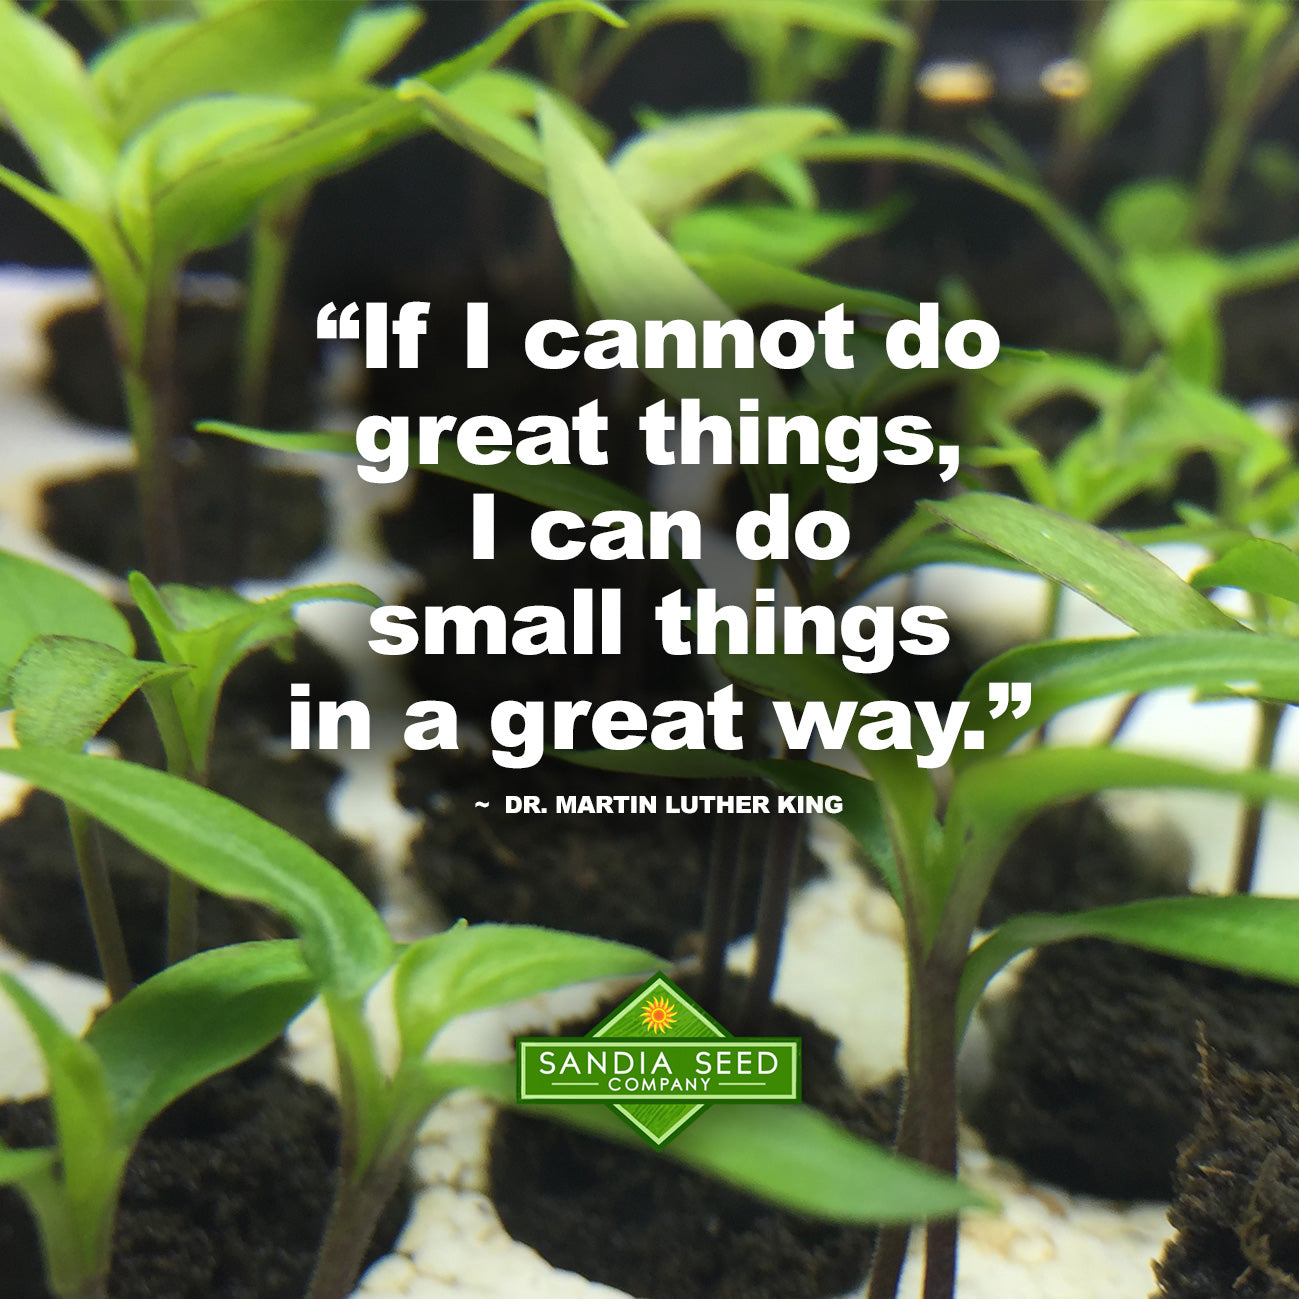 """If I cannot do great things, I can do small things in a great way."" ~  DR. MARTIN LUTHER KING"